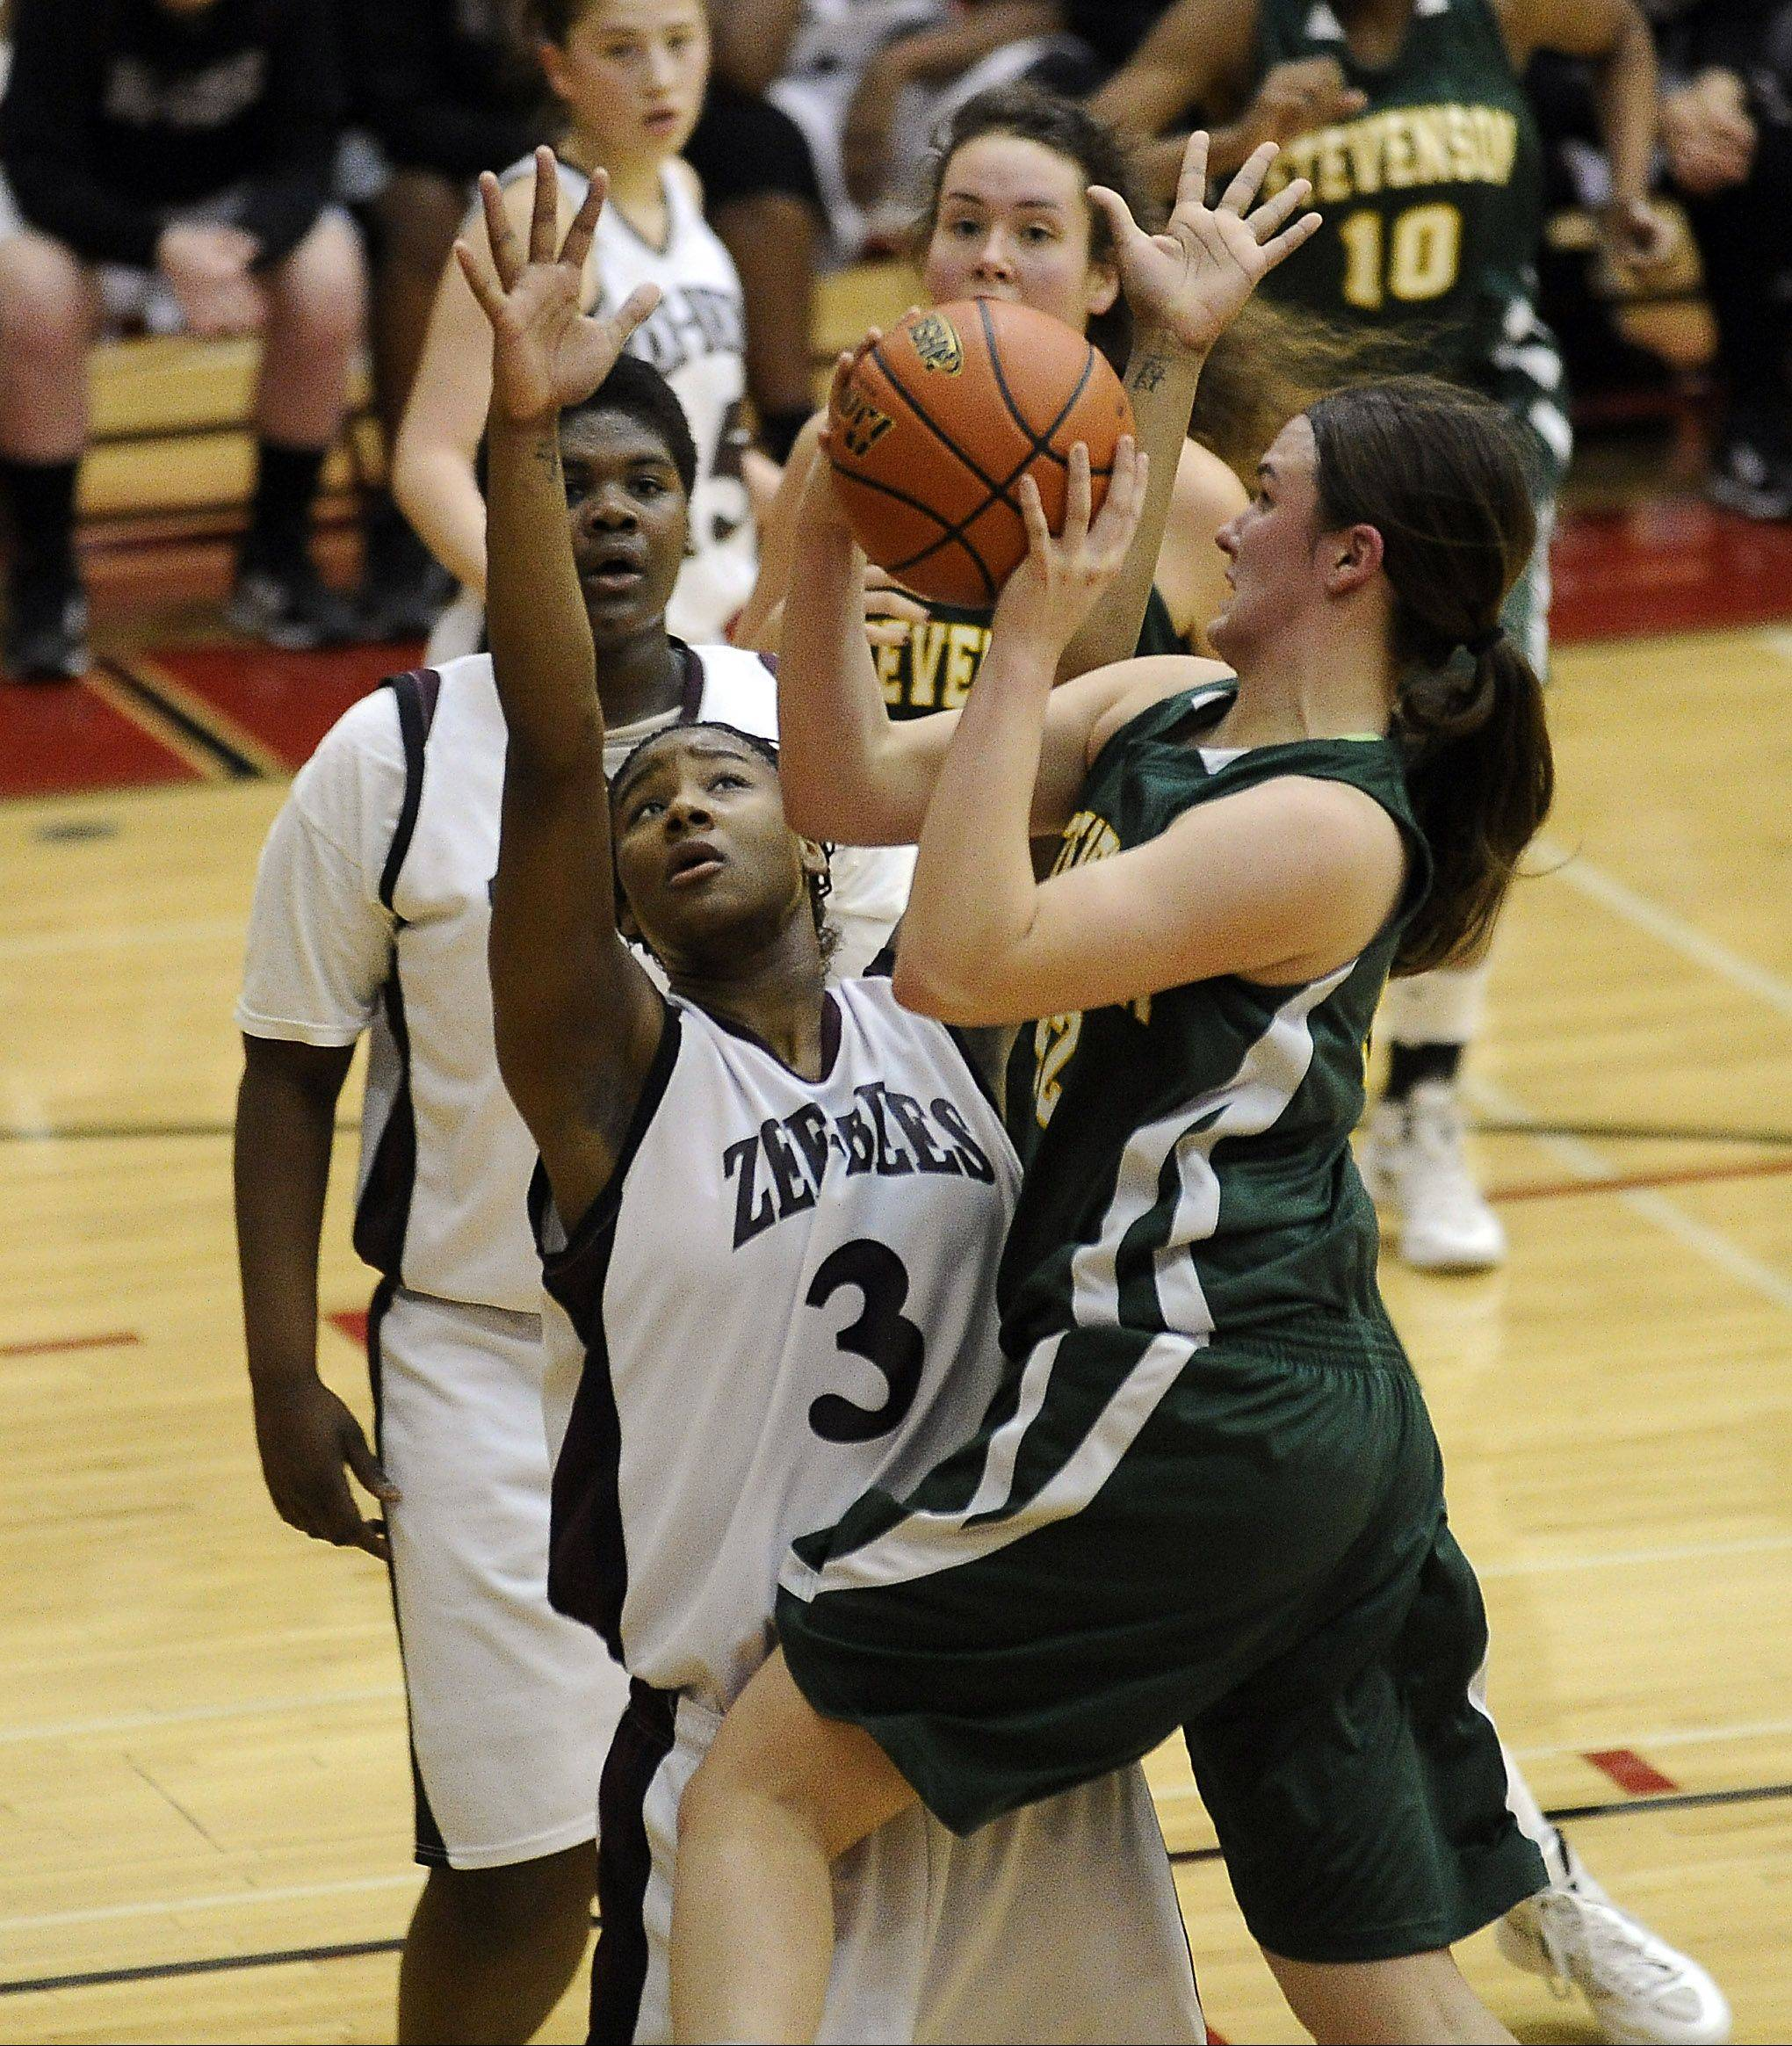 Stevenson's Alexandra Elzinga powers her way to the basket as Zion-Benton's Octavia Crump tries to block the shot in sectional semifinal play at Palatine on Monday.